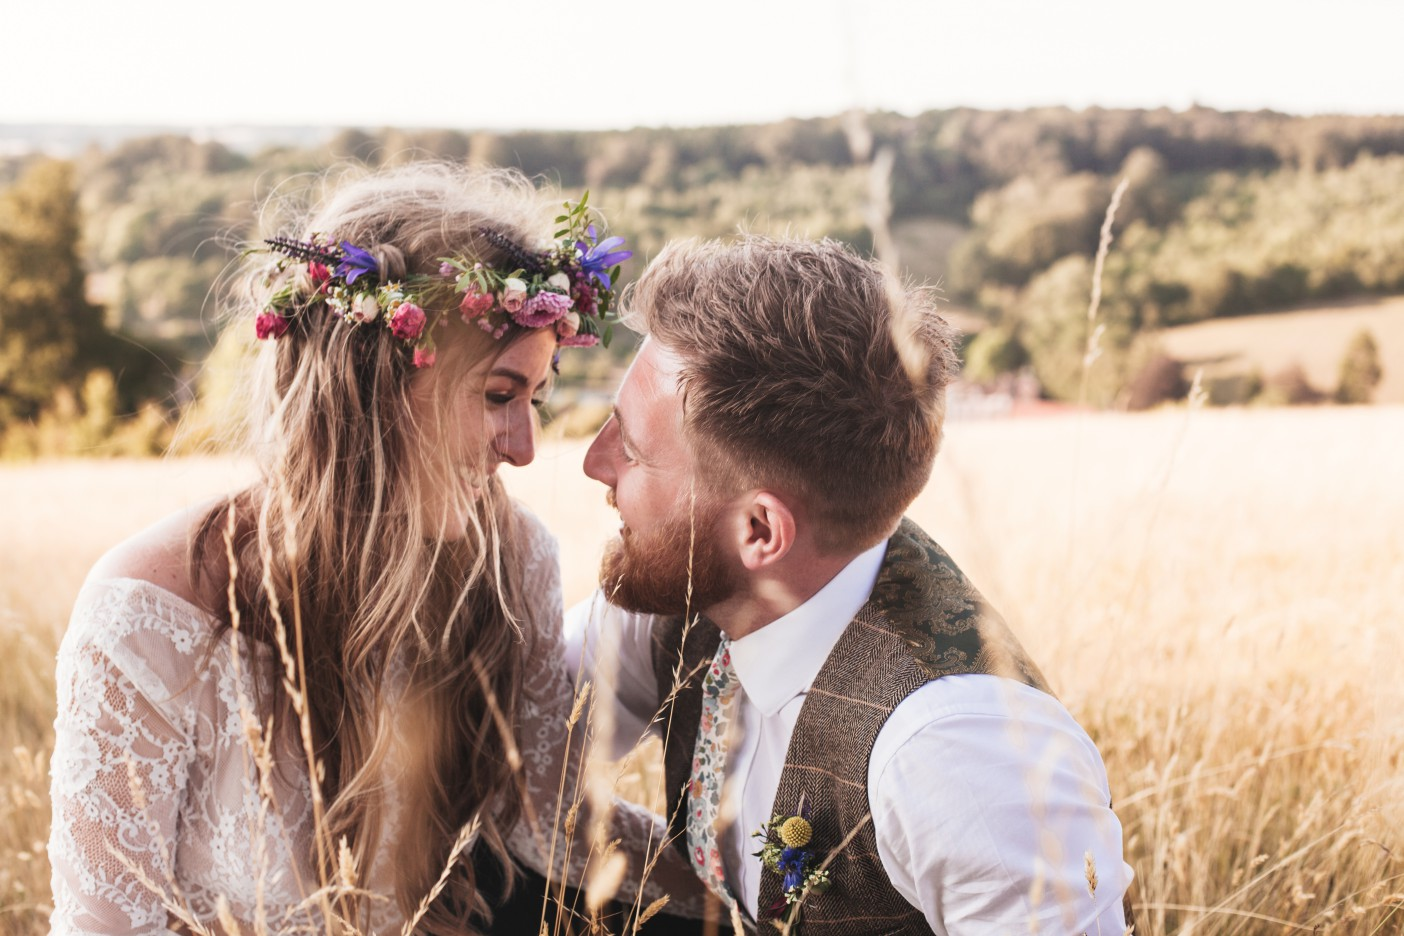 Festival Wedding- Joelle Poulos- Grass